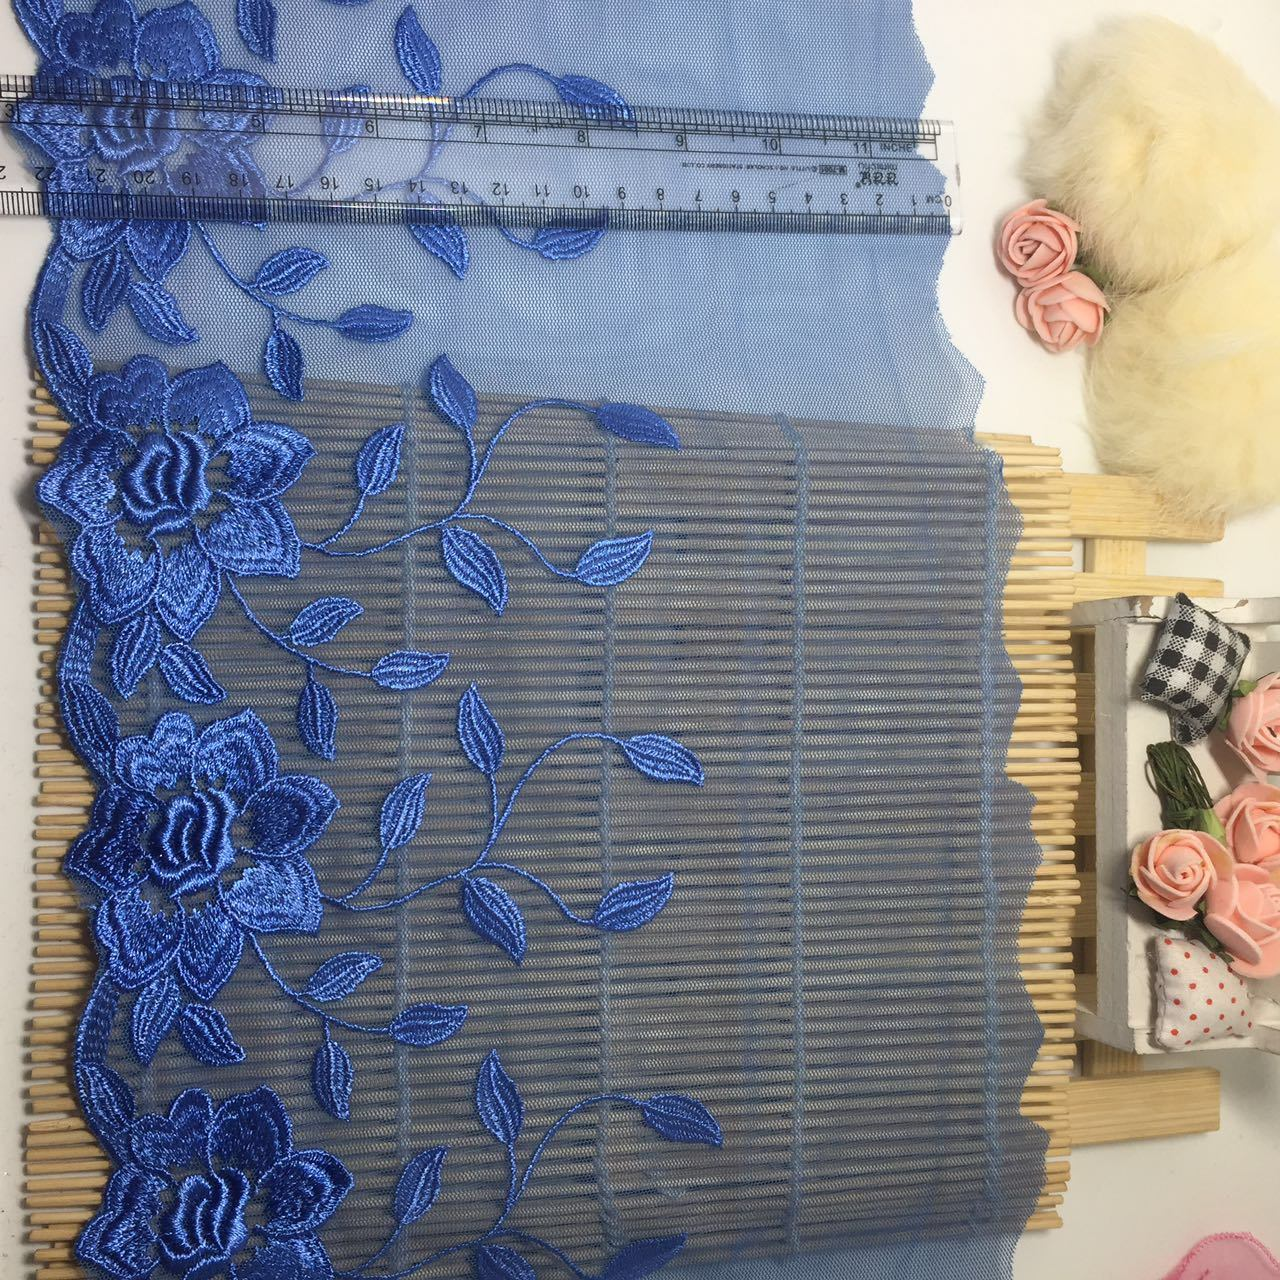 Wedding Doll Dress Accessories Apparel Fabric Wholesale 19cm Width Embroidery Organza Bridal Mesh Lace for Women Underwear Garments & Home Textiles & Beddings